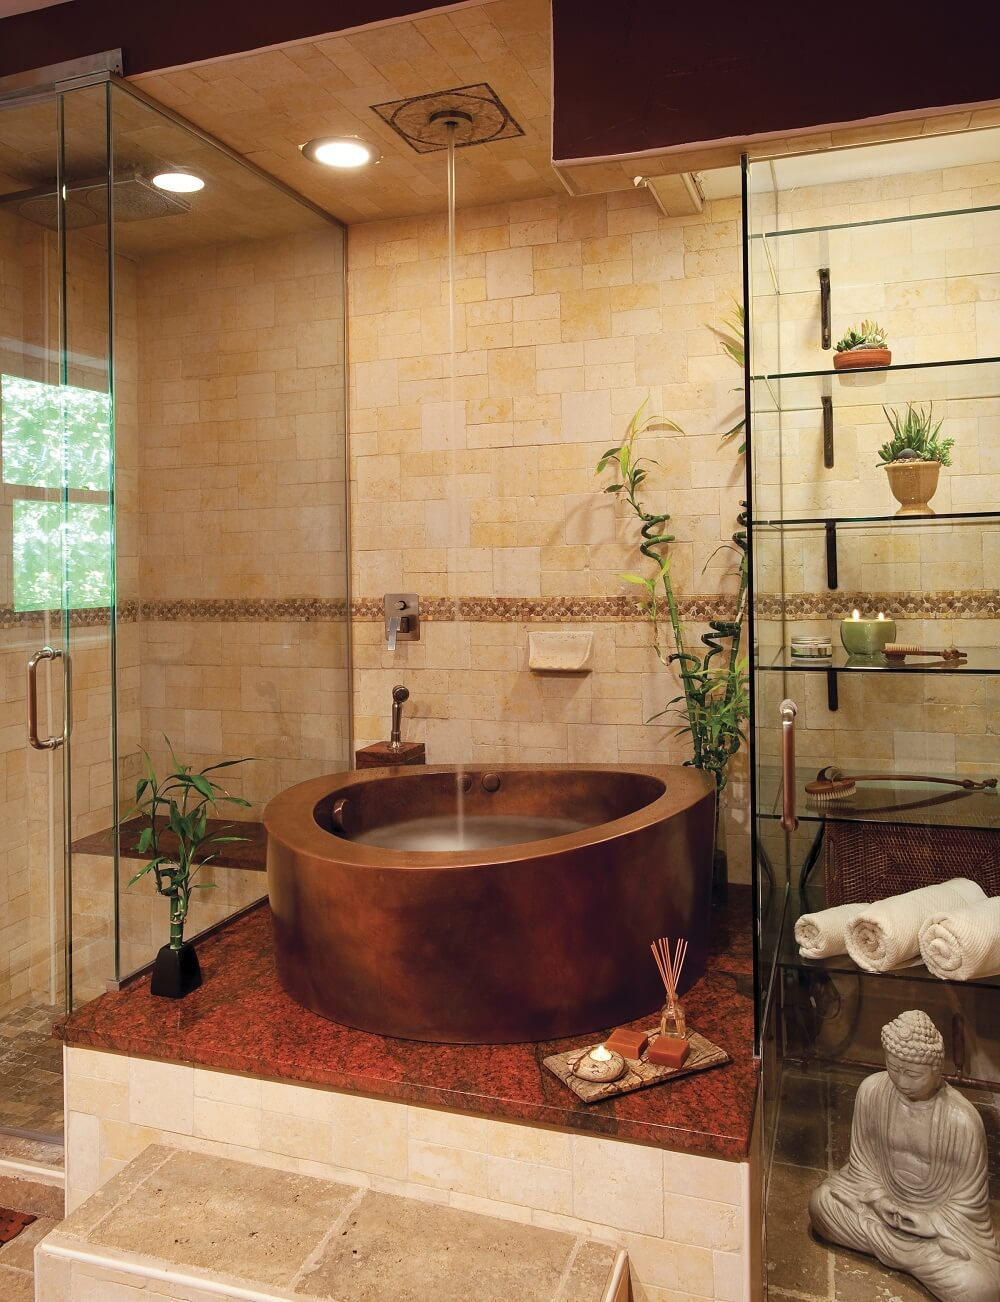 Prime Japanese Soaking Tubs Japanese Baths Outdoor Soaking Tub Beutiful Home Inspiration Semekurdistantinfo